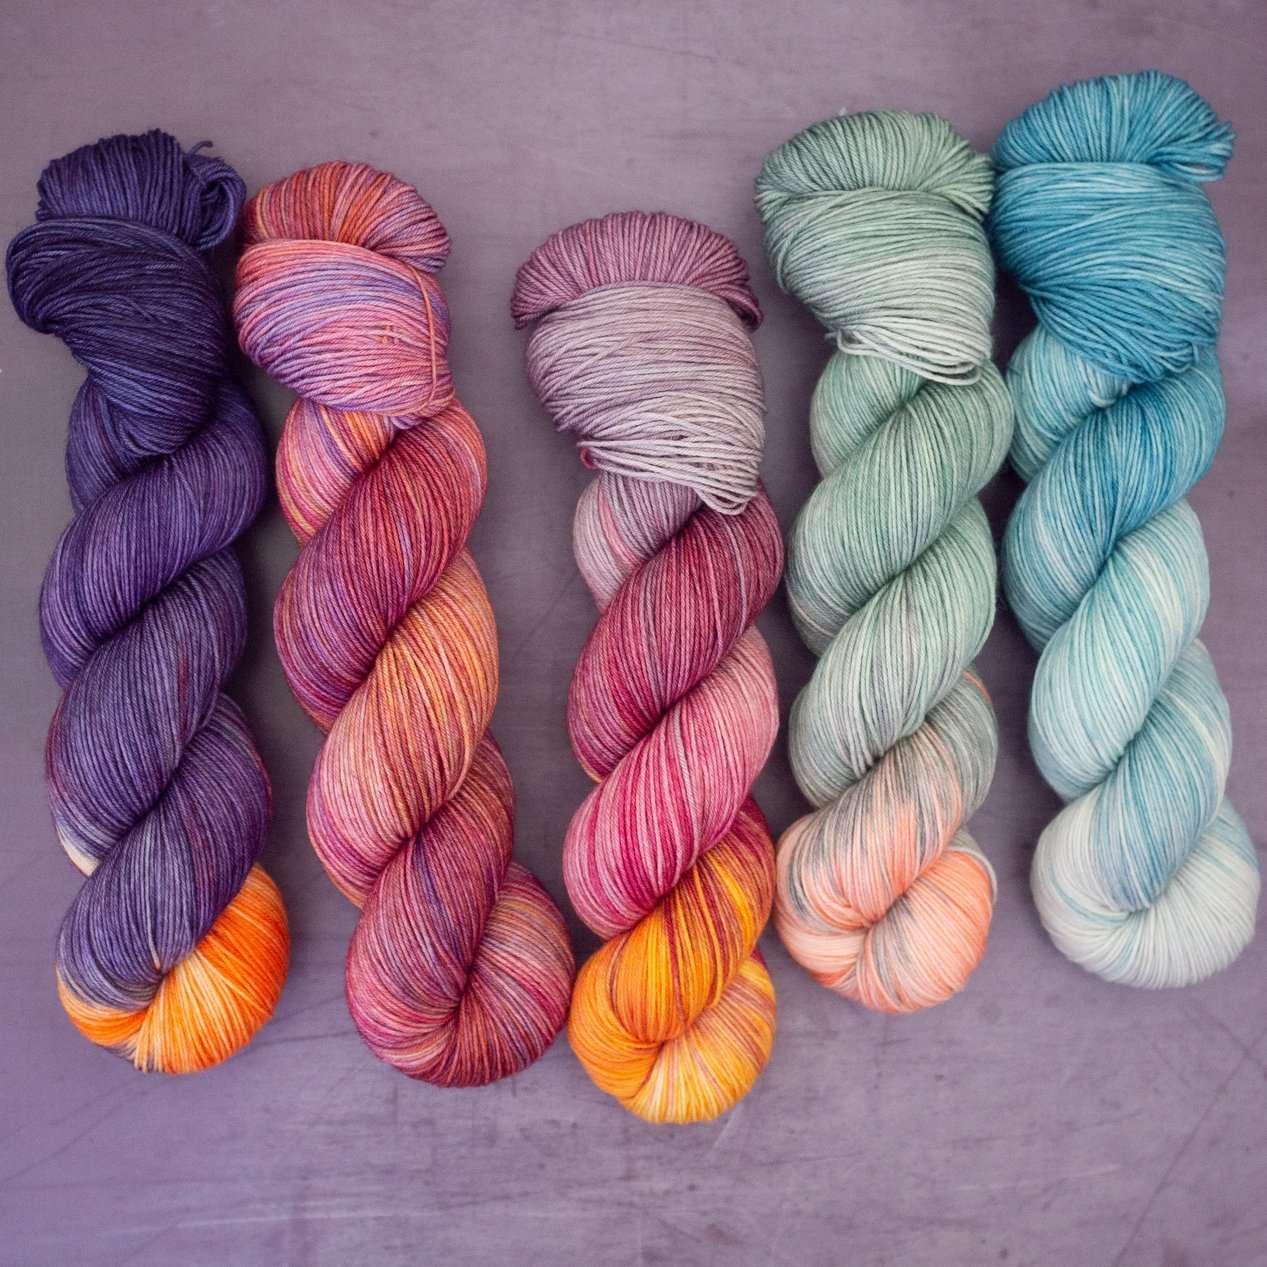 DK in medium colorways with bright accent colors.